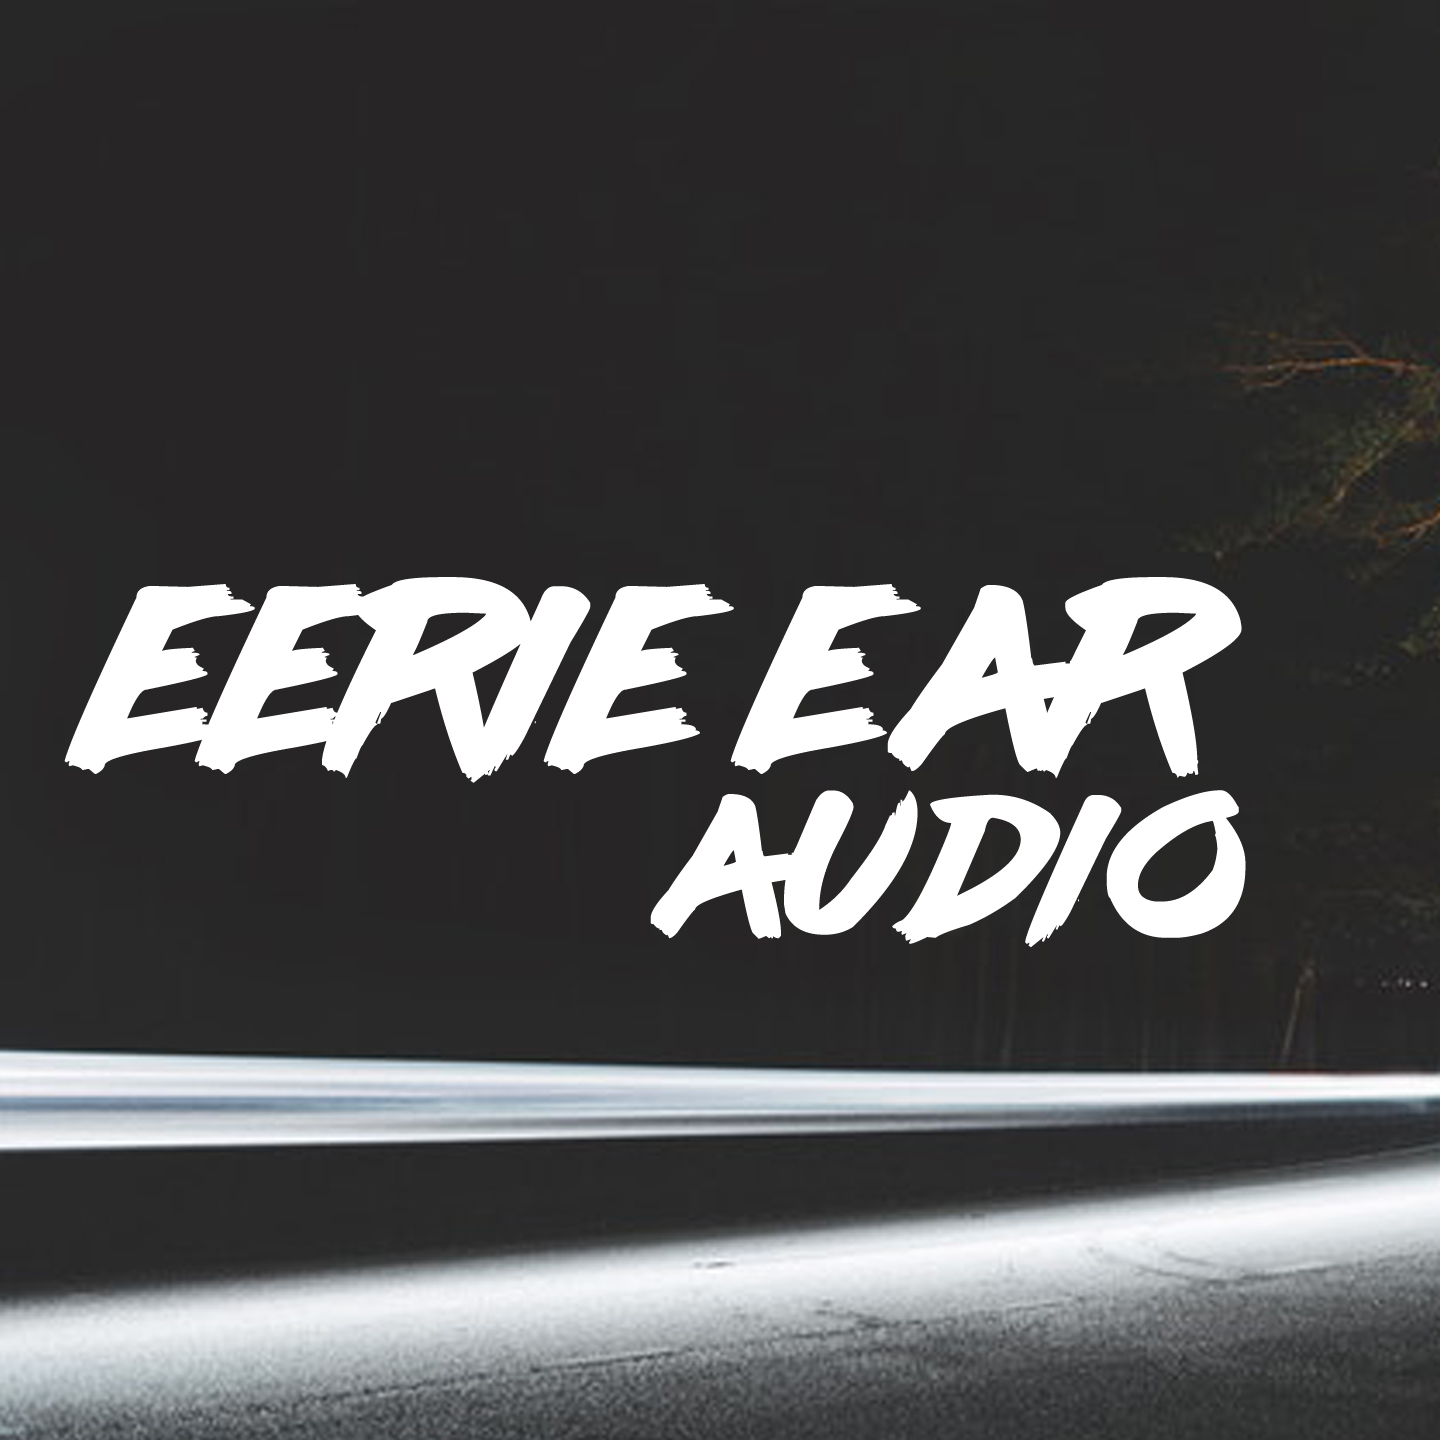 Eerie Ear Audio